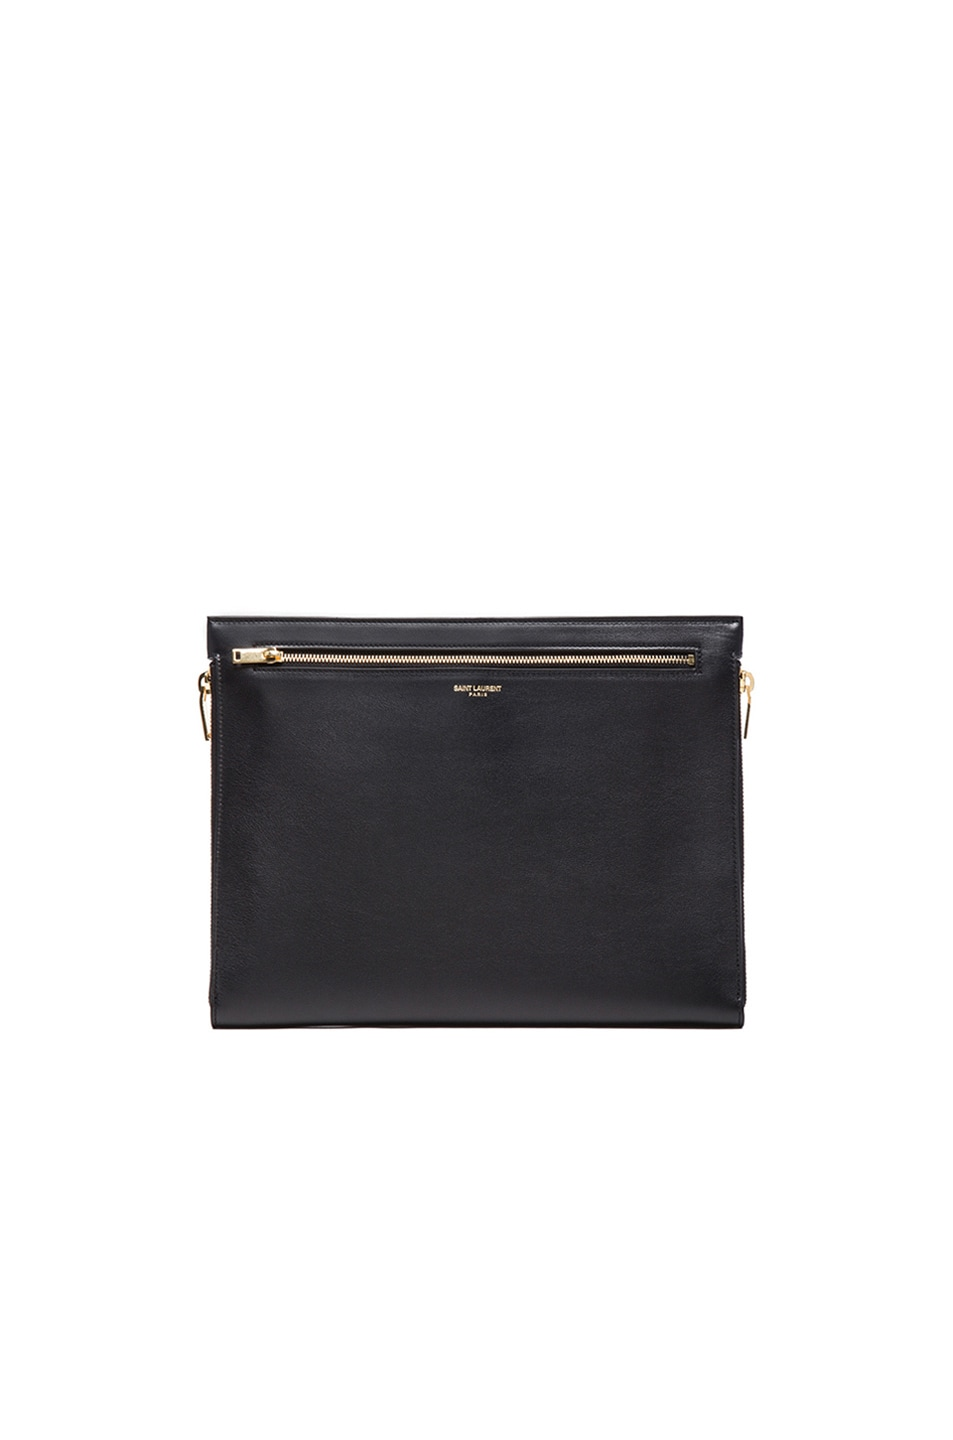 Image 1 of Saint Laurent Three Zipper Envelope Clutch in Black